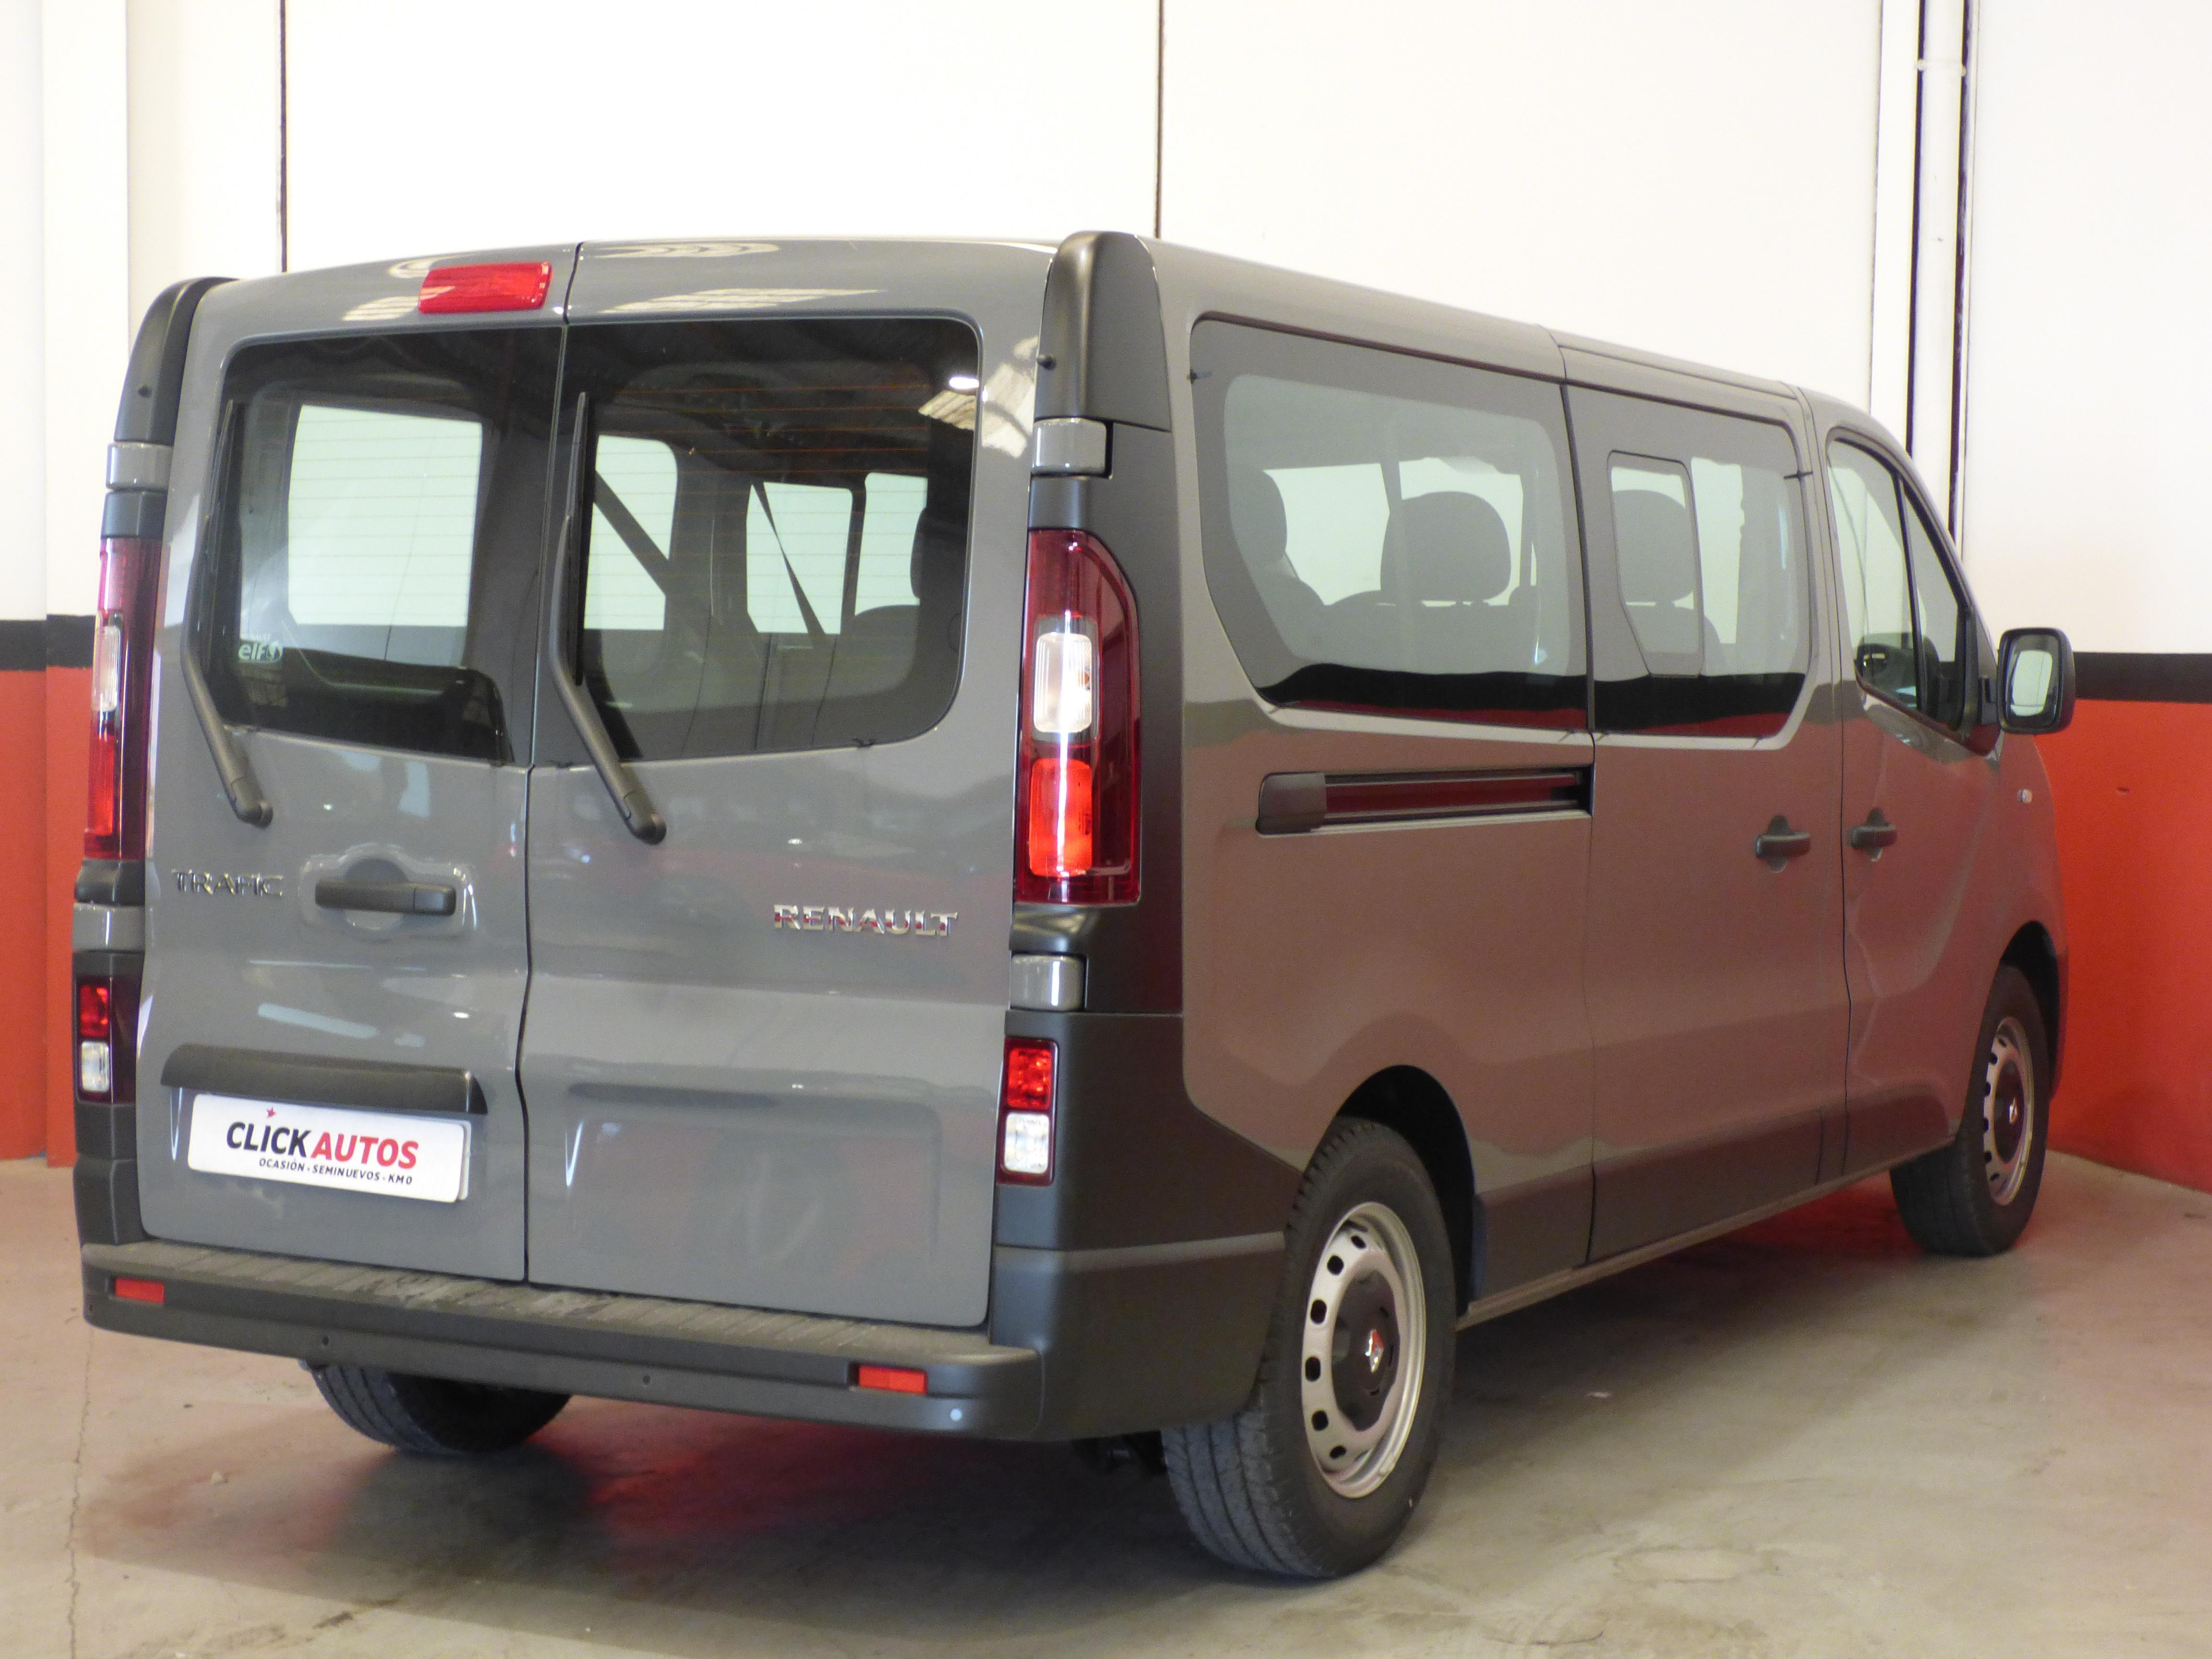 Traffic 1.6 DCI 120CV Combi 9 Energy Largo 2